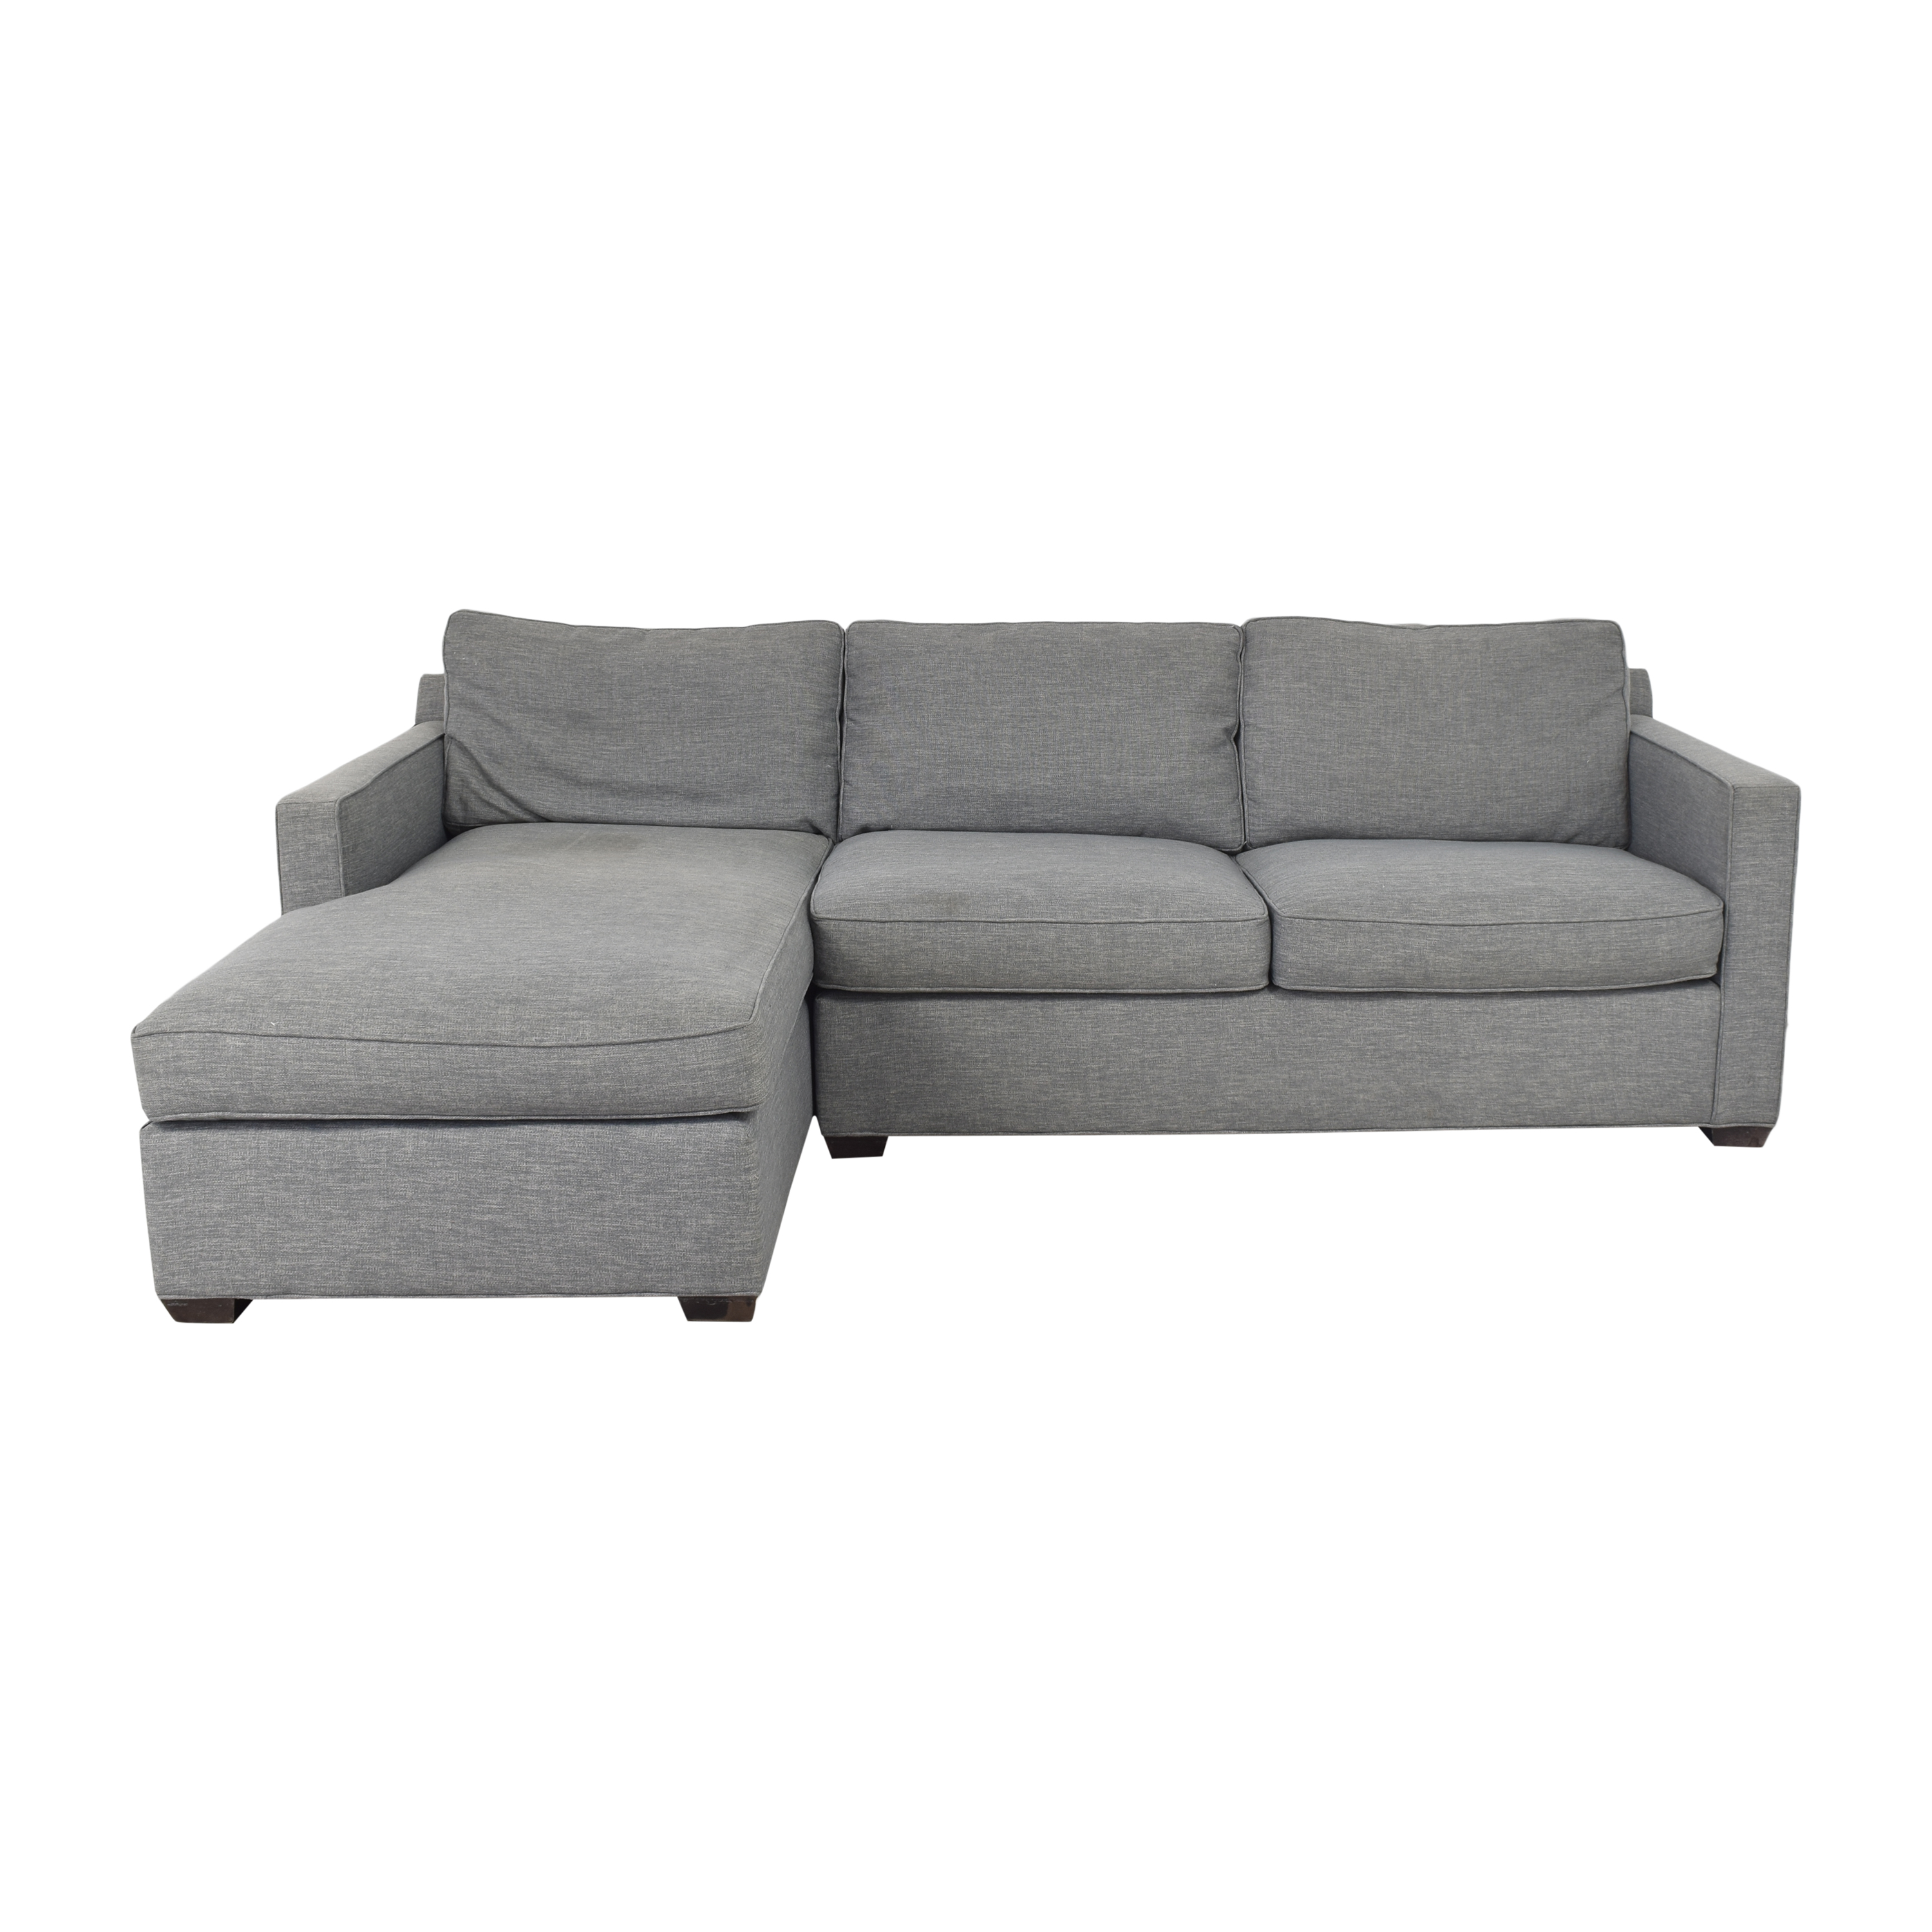 buy Crate & Barrel Crate & Barrel Barrett Two Piece Chaise Sectional online